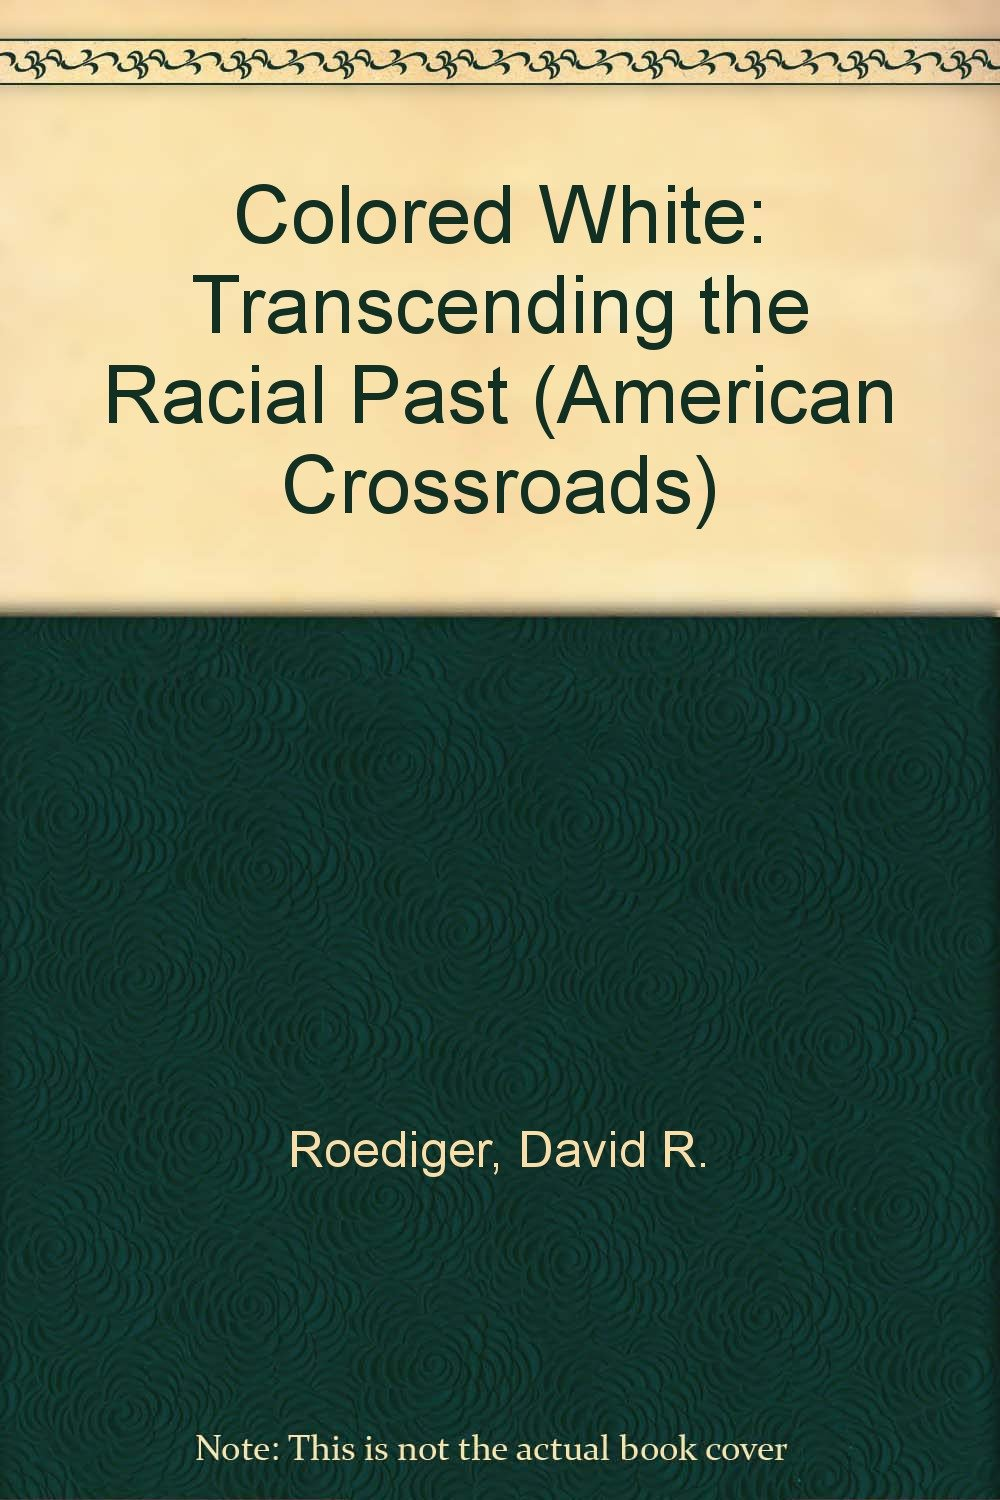 Colored White: Transcending the Racial Past (American Crossroads) PDF